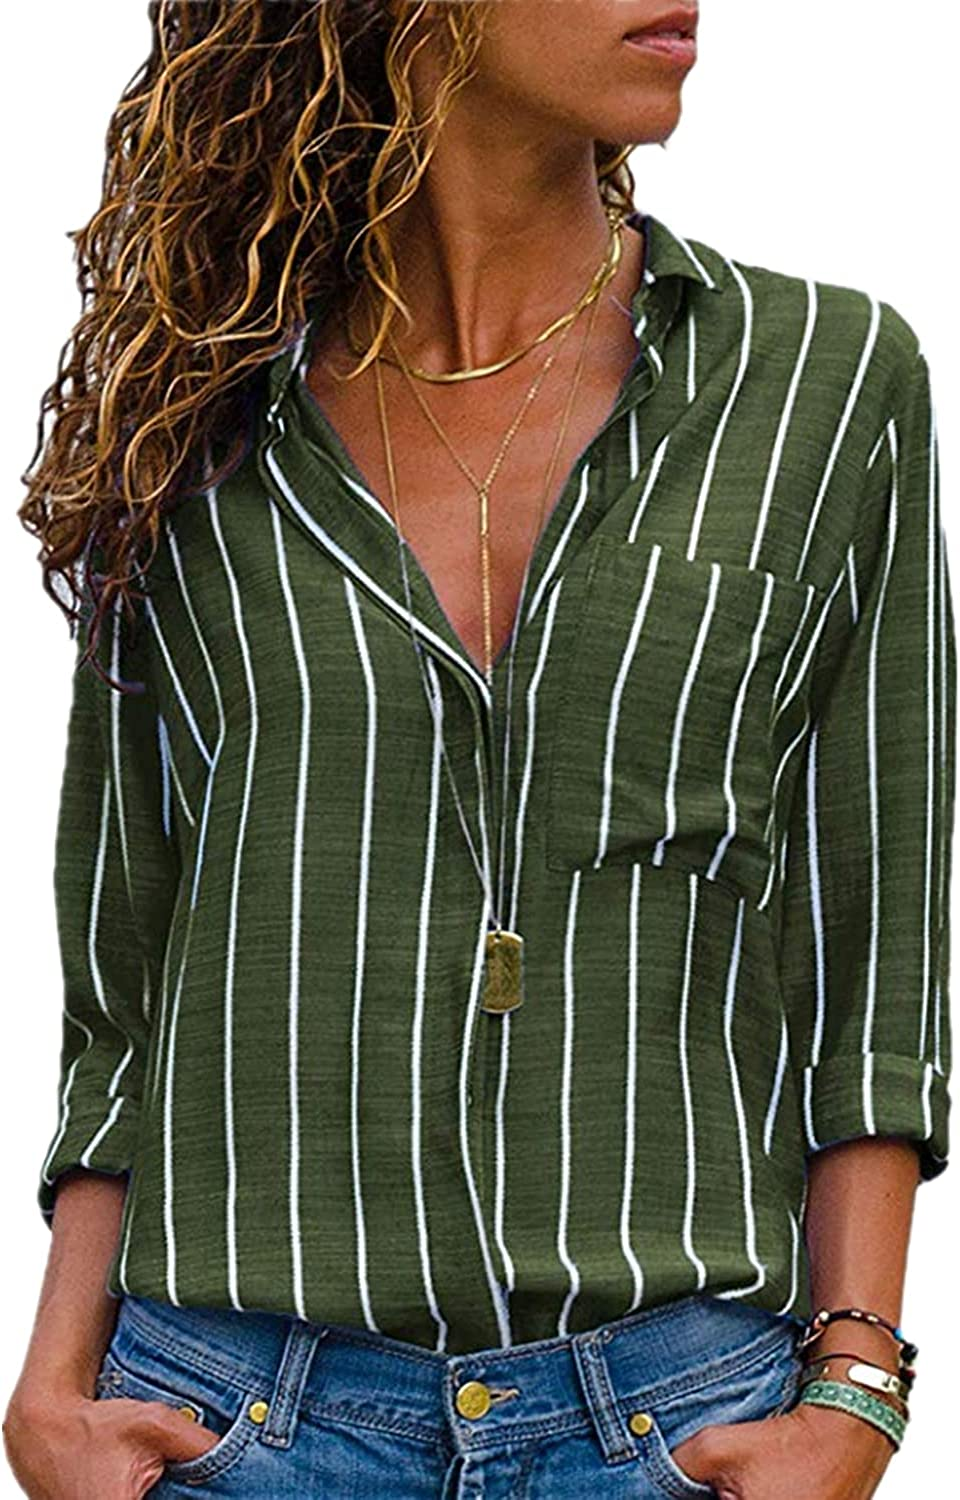 ZOCANIA Womens Summer Blouses Casual V Neck Stripe Cuffed Sleeve Button Shirts Tops